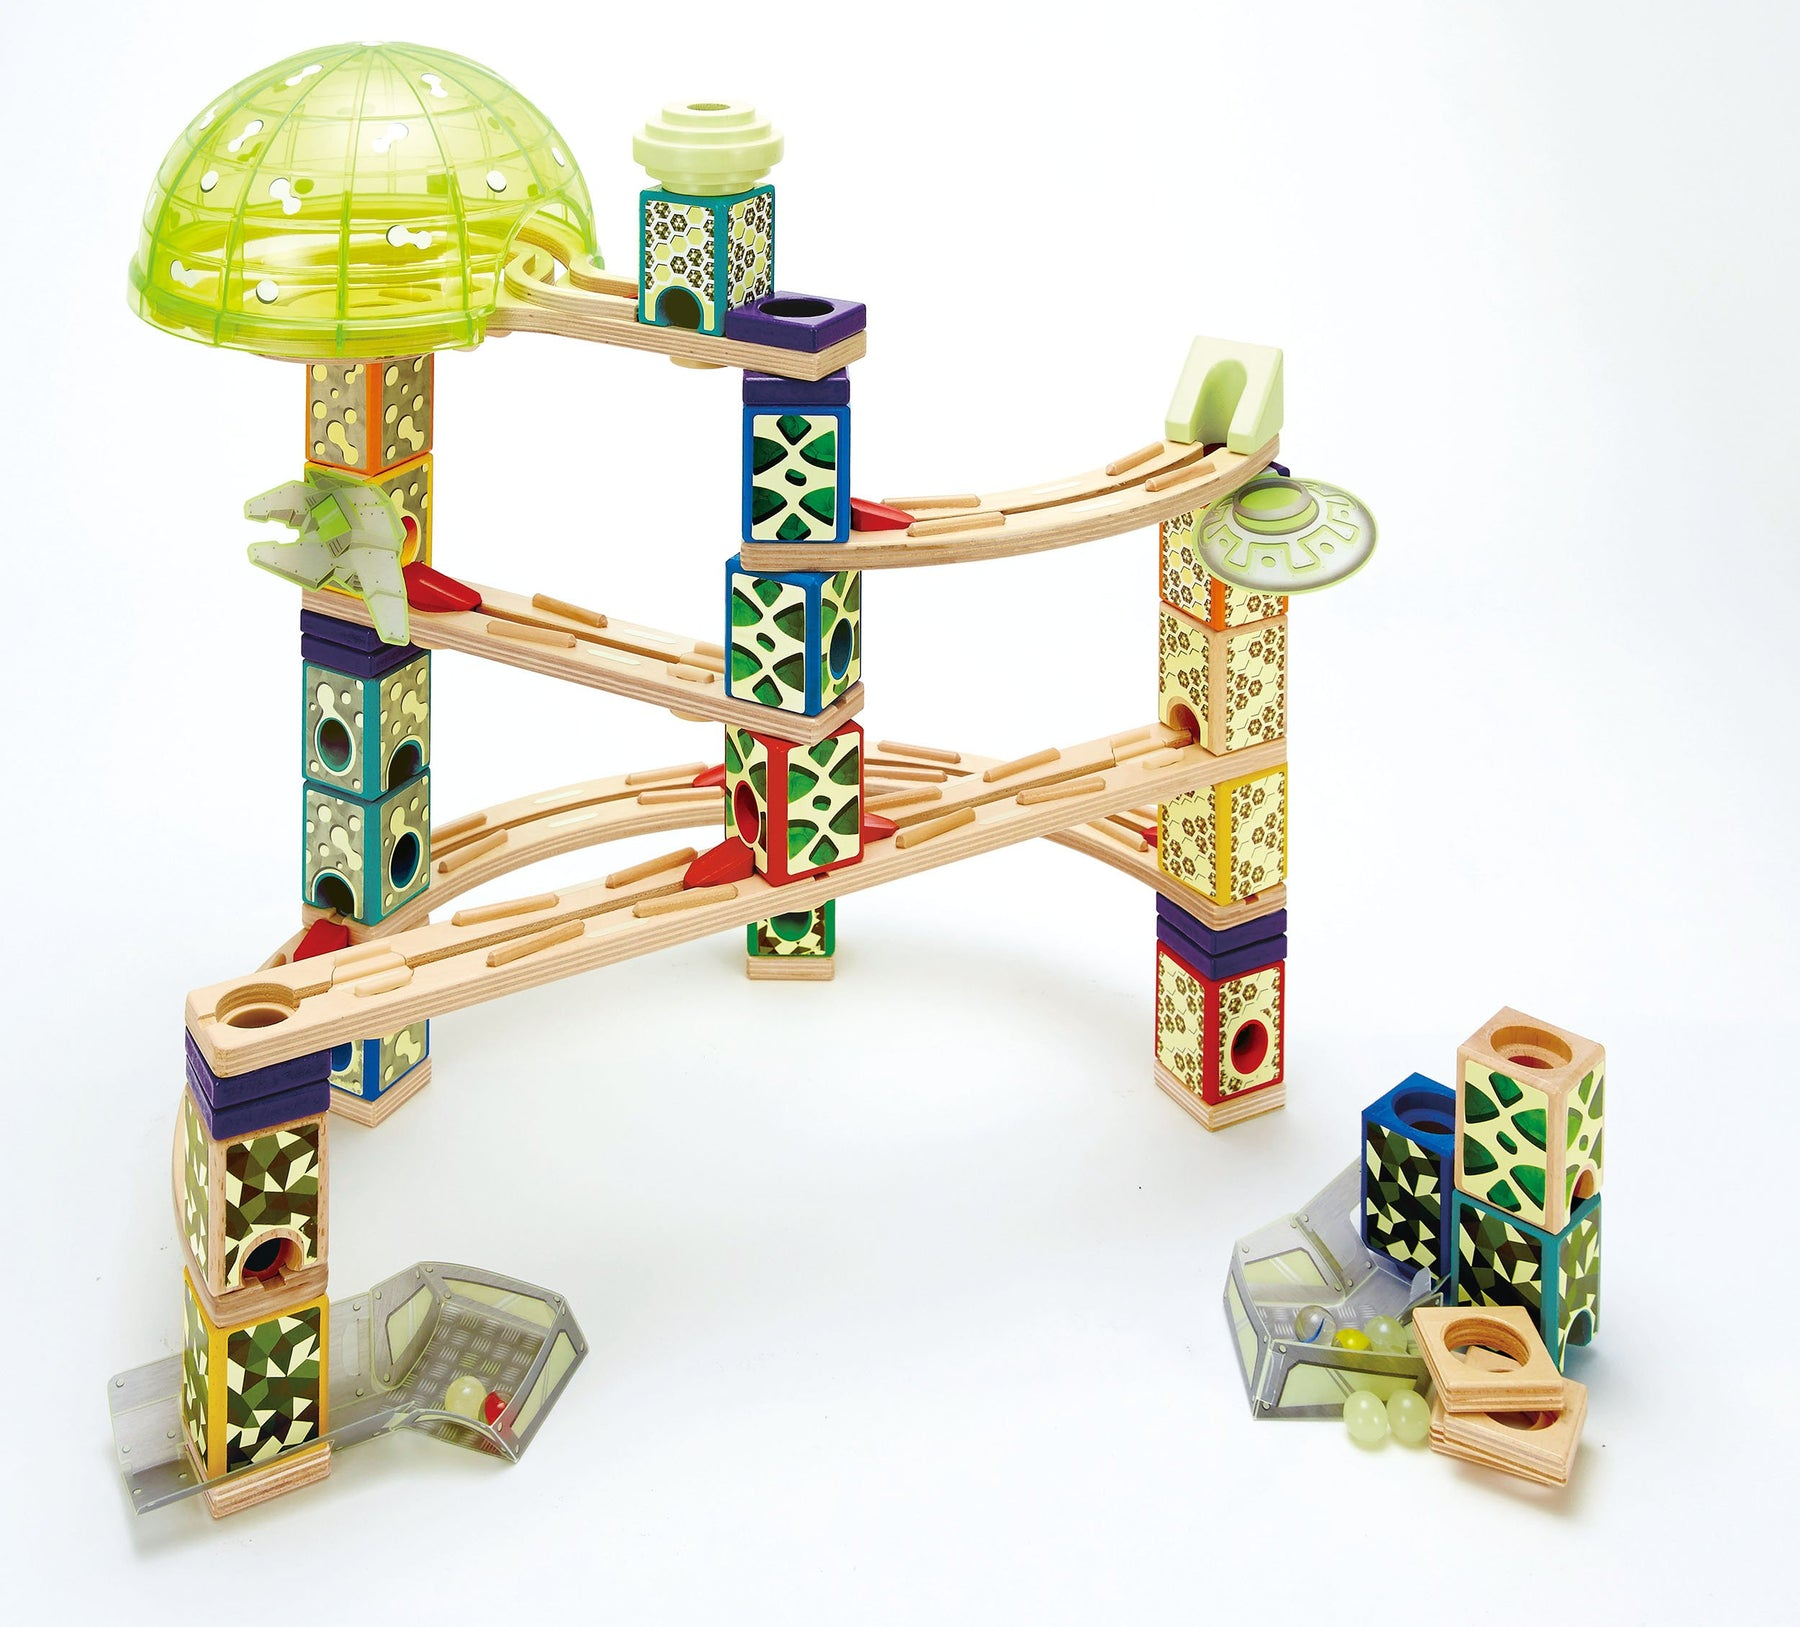 木とマーブルのタワー Award Winning Hape Quadrilla Wooden Marble Run Construction - Space City - Zacca store